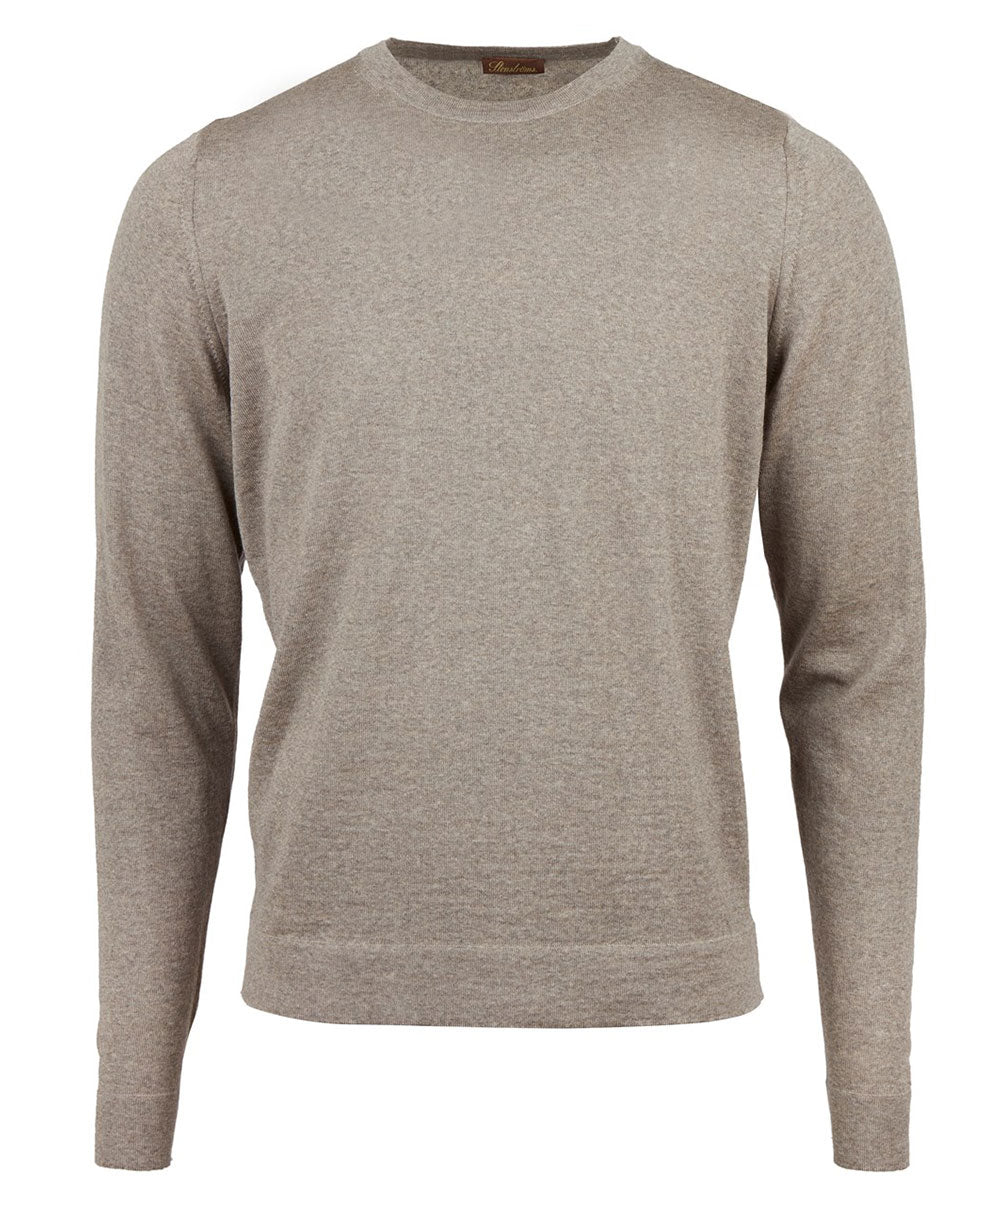 Beige Melange Crew Neck Knit Sweater